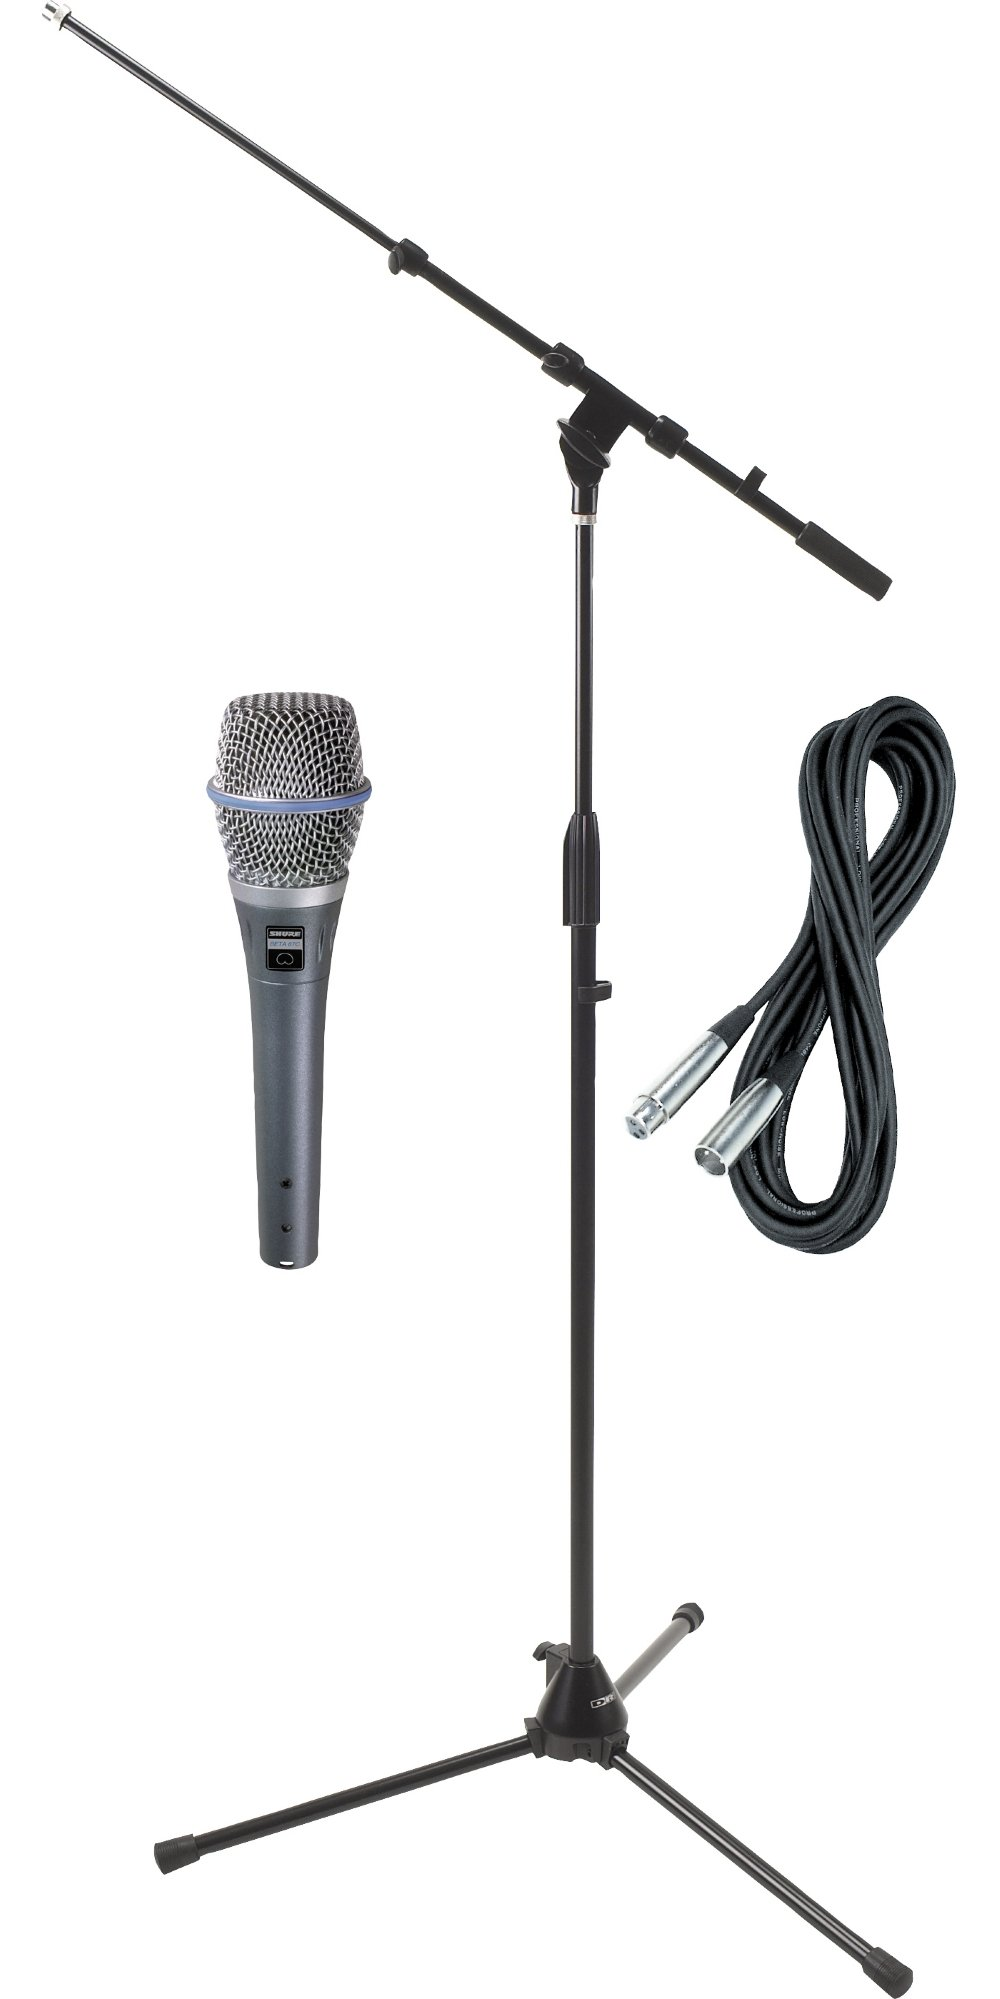 Microfono Shure Beta 87c Hh Condenser Mic With Cable And ..